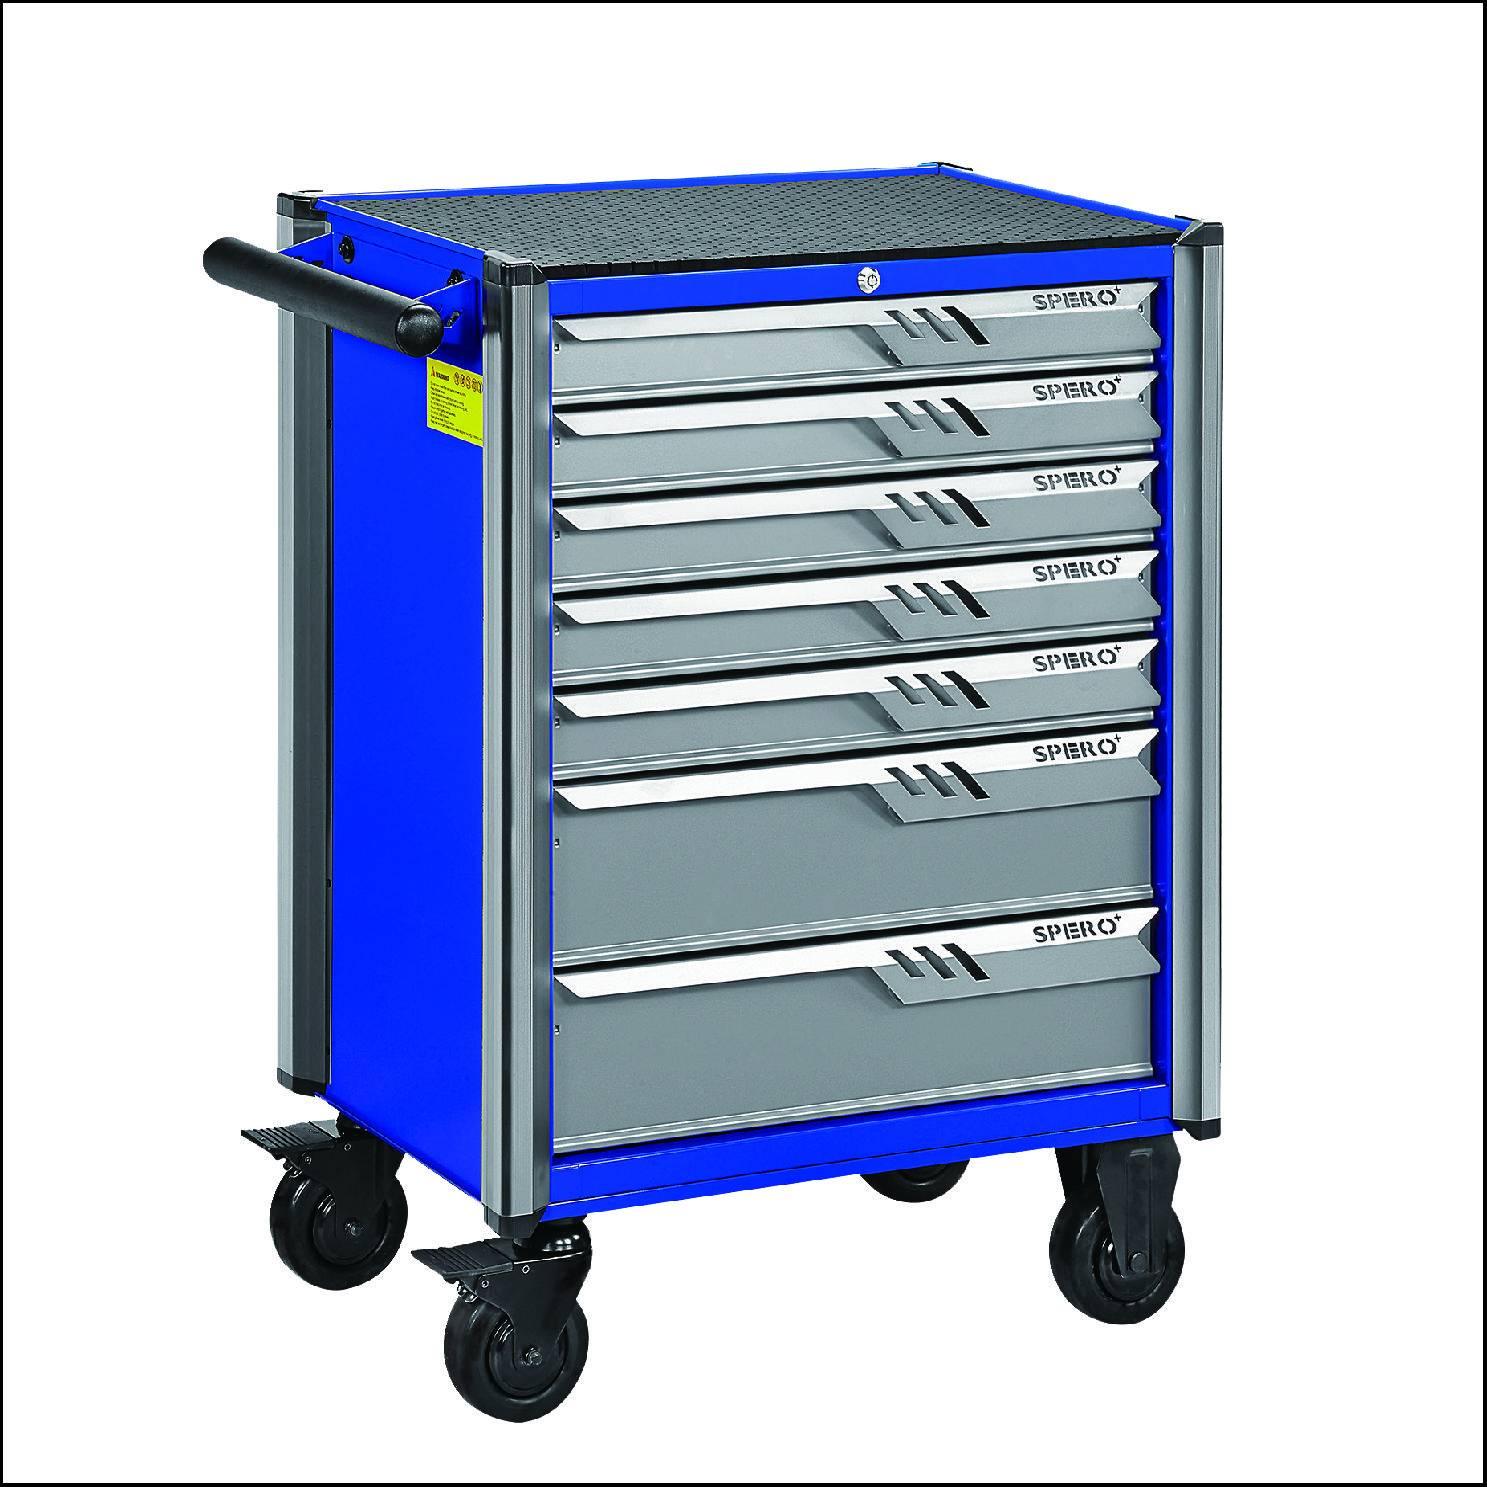 146 PC AUTOMOTIVE SERVICE TOOL TROLLEY SET - ANTI-CRASH CORNER 146 PC AUTOMOTIVE SERVICE WÓZEK NARZĘDZIOWY